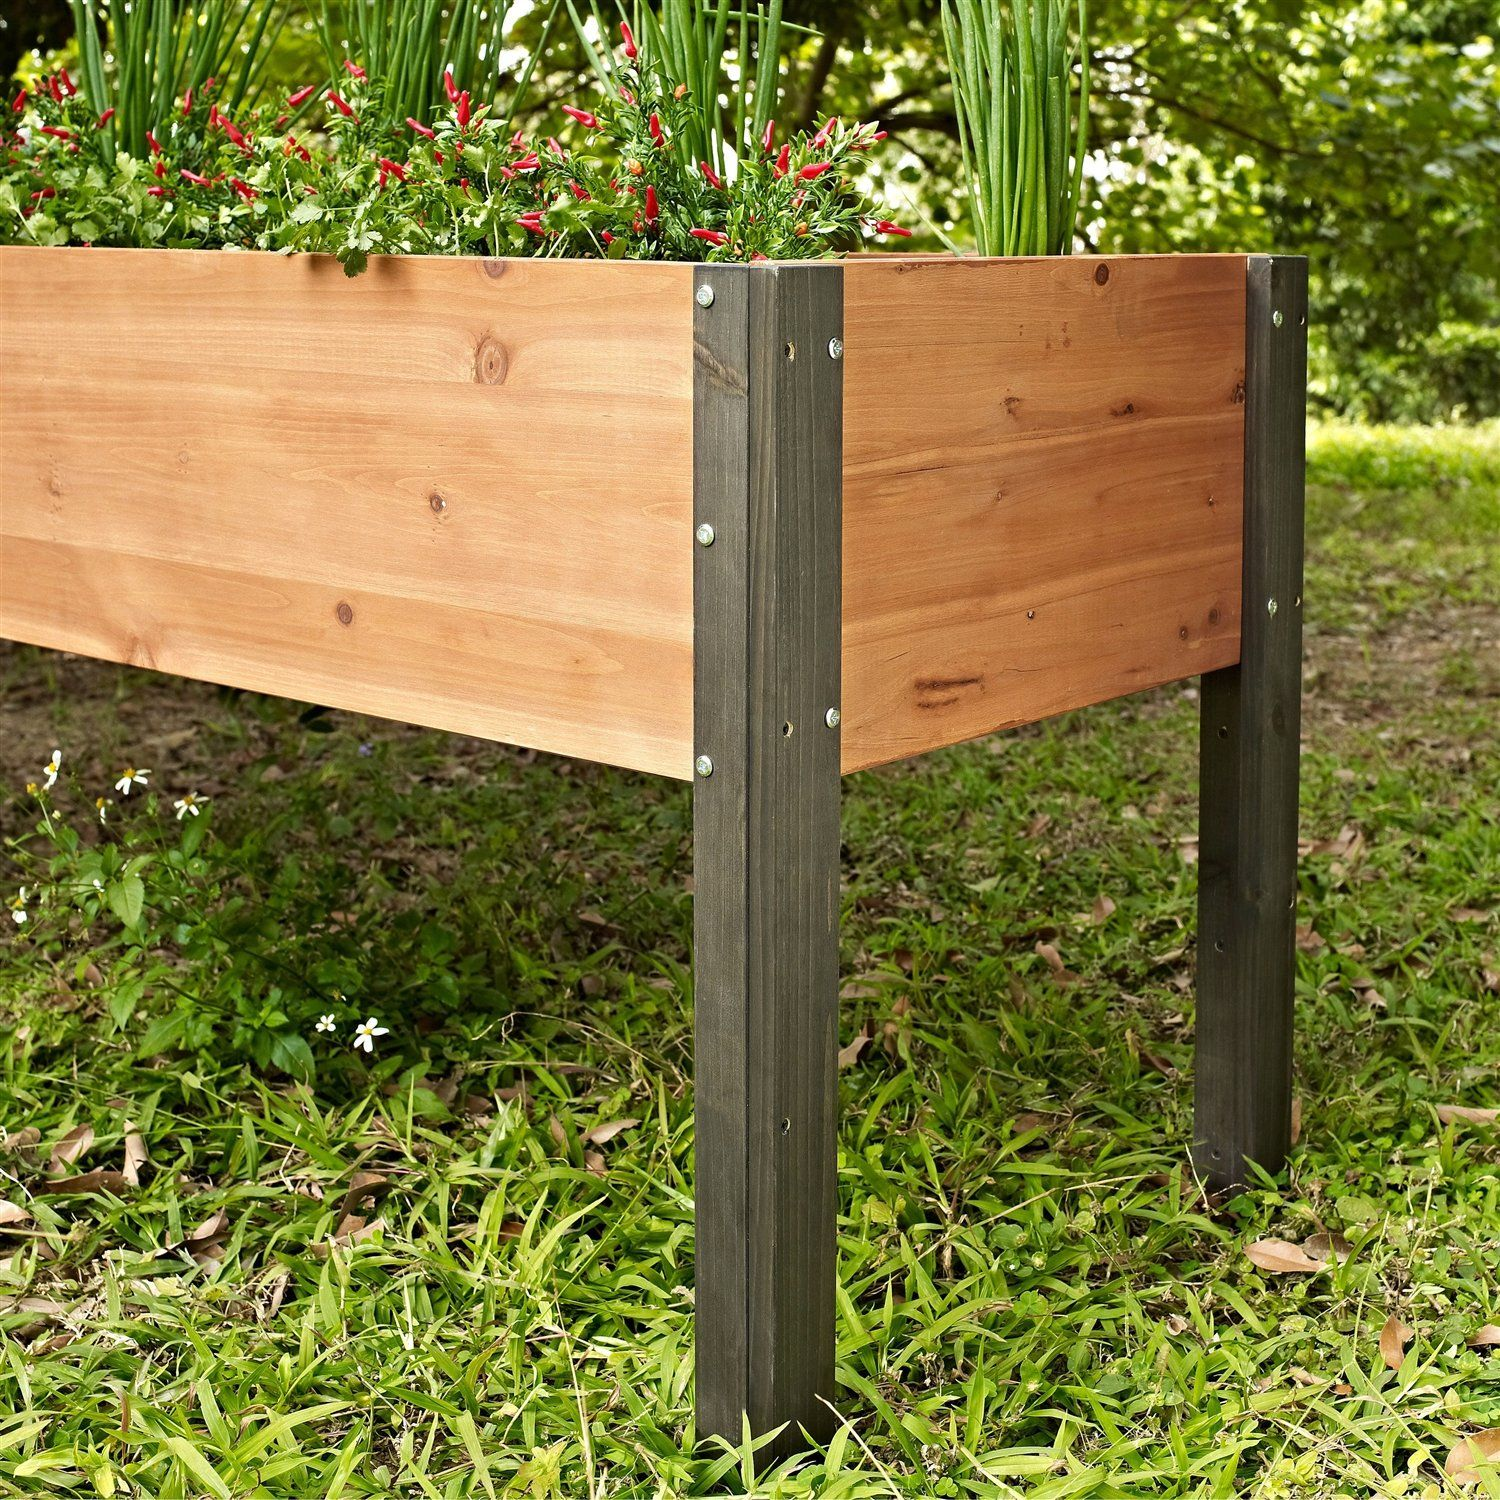 Choose The Best Place To Plant Your Garden With This